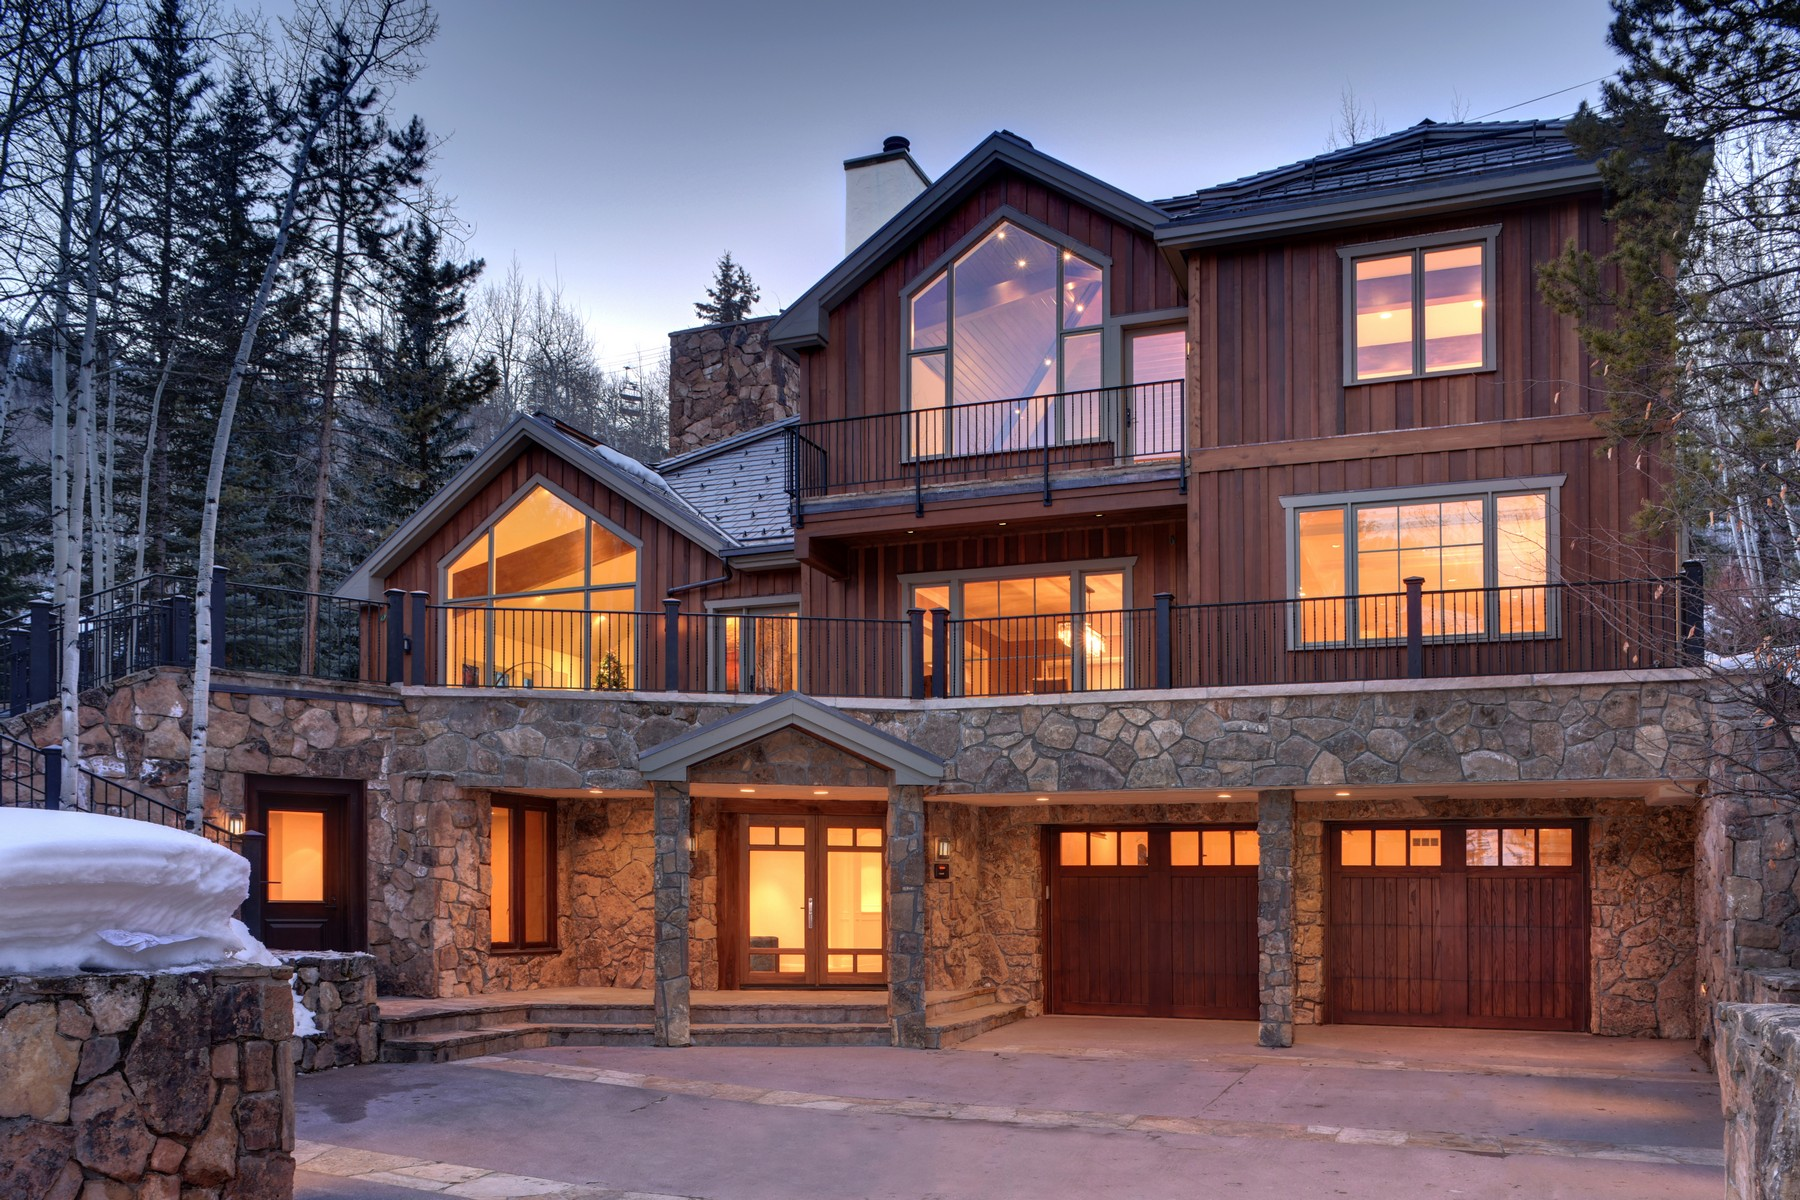 Single Family Home for Active at Ski inSki out Residence in Beaver Creek 65 Elk Track Ct Beaver Creek, Colorado 81620 United States